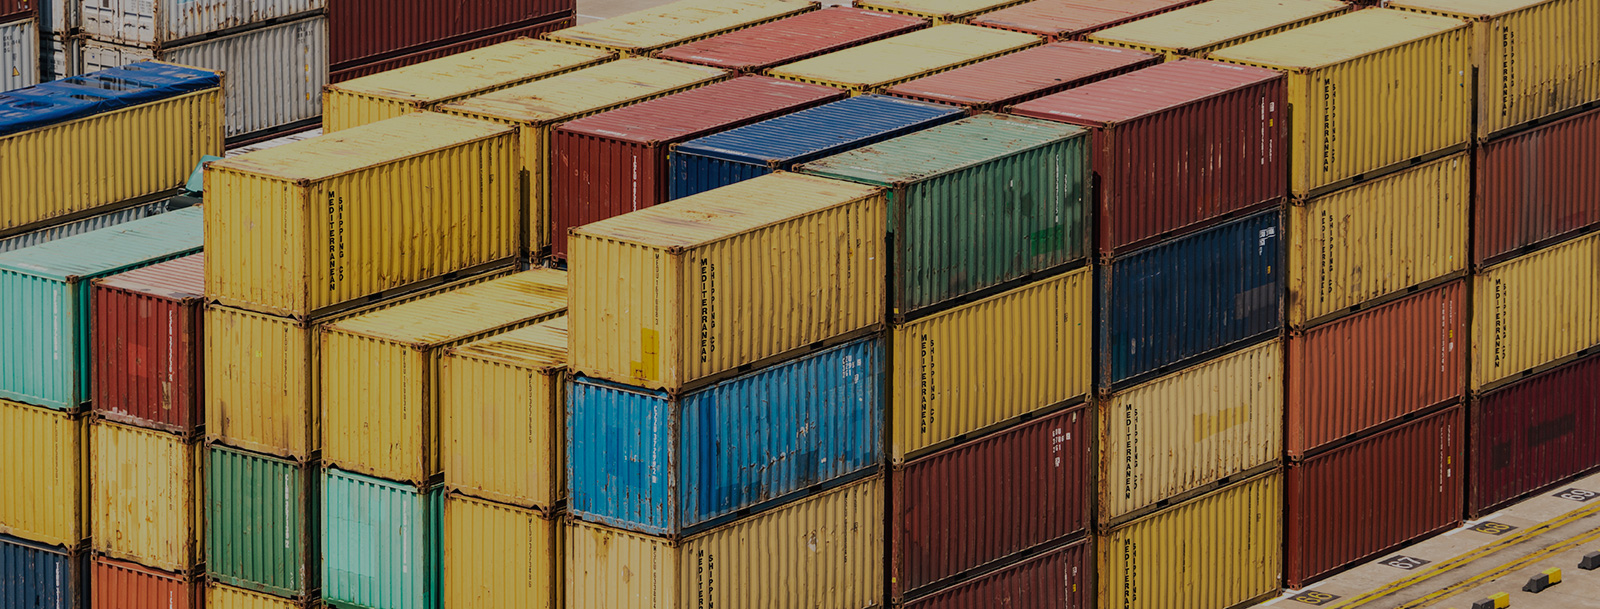 View of colorful shipping containers stacked